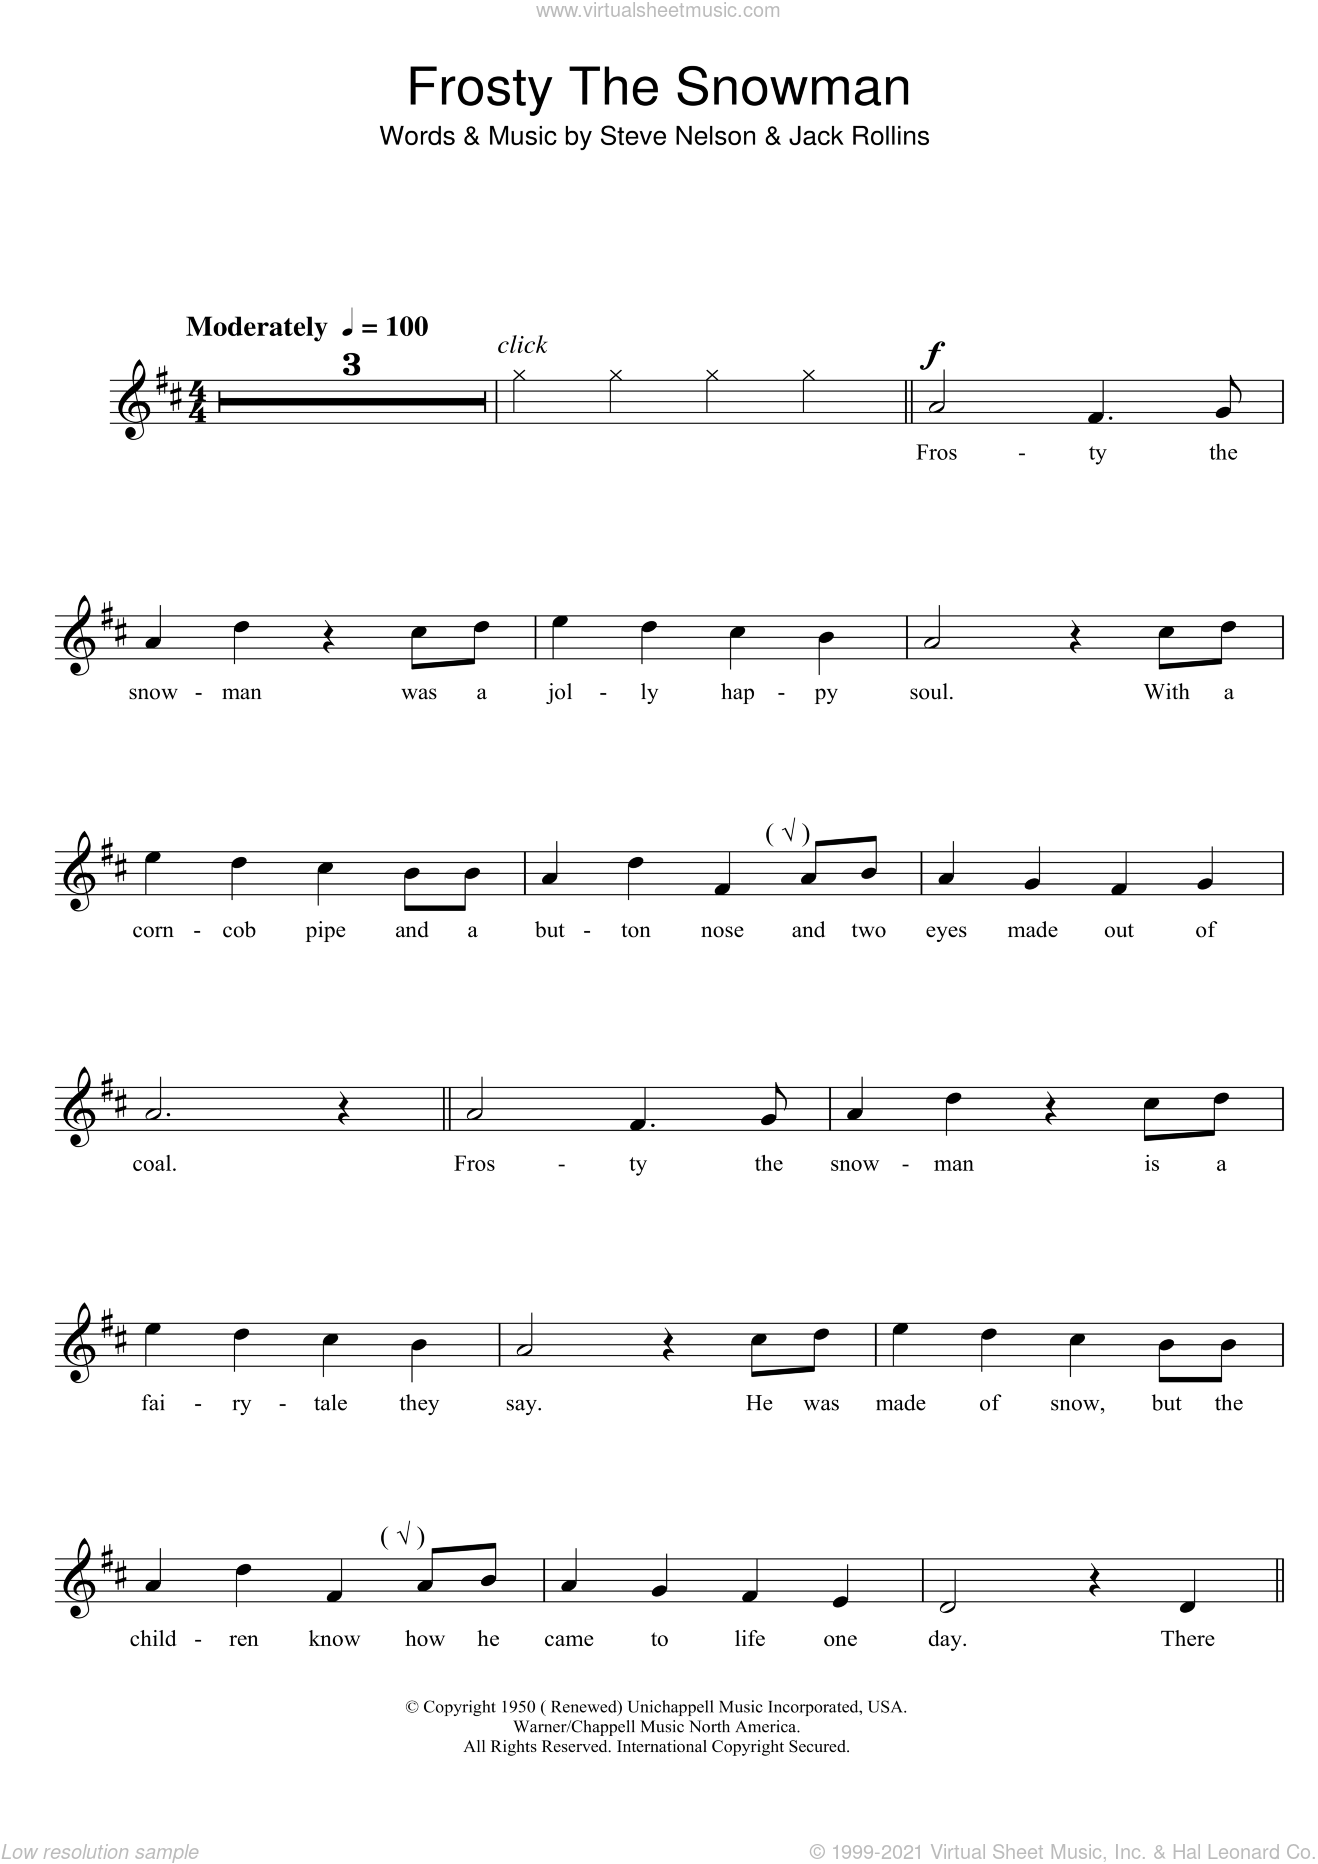 Frosty The Snowman sheet music for clarinet solo by The Ronettes, Jack Rollins and Steve Nelson, intermediate skill level